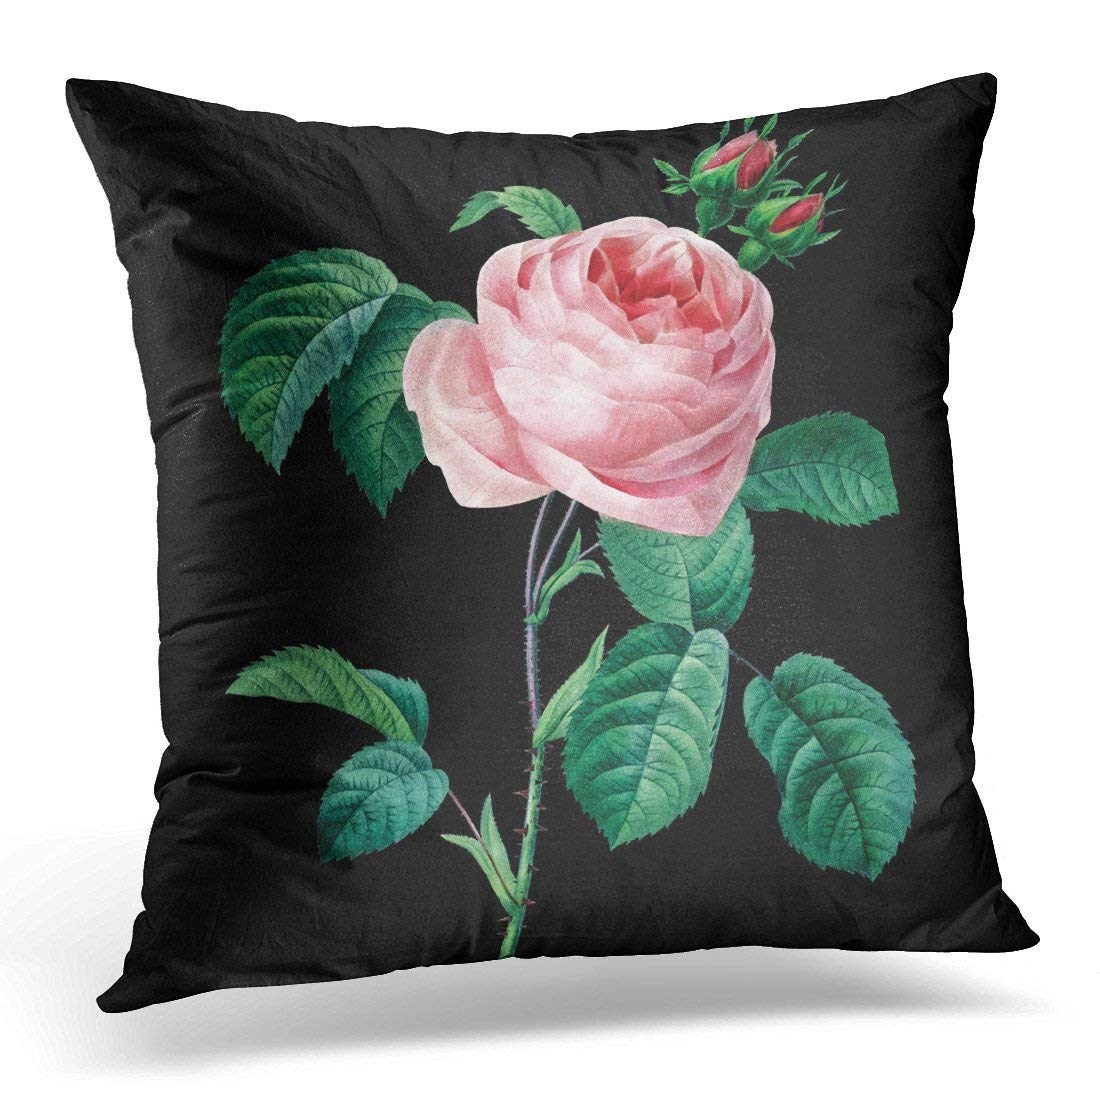 WOPOP Roses Pink Rose Black Floral Redoute Pillowcase Cover 20x20 inch